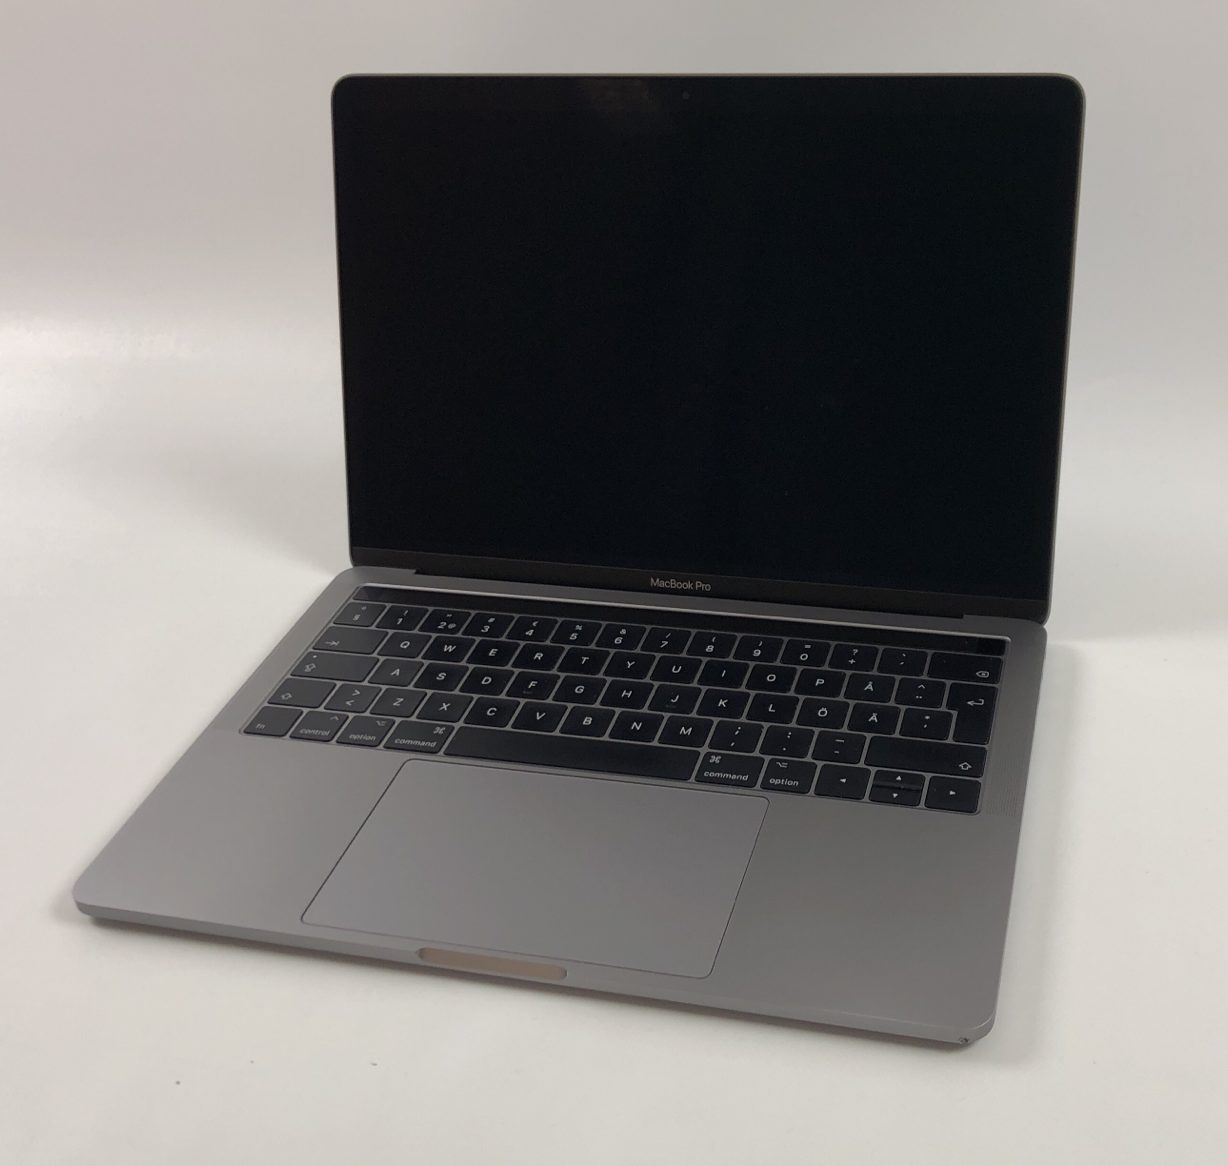 "MacBook Pro 13"" 4TBT Mid 2017 (Intel Core i5 3.1 GHz 8 GB RAM 256 GB SSD), Space Gray, Intel Core i5 3.1 GHz, 8 GB RAM, 256 GB SSD, bild 1"